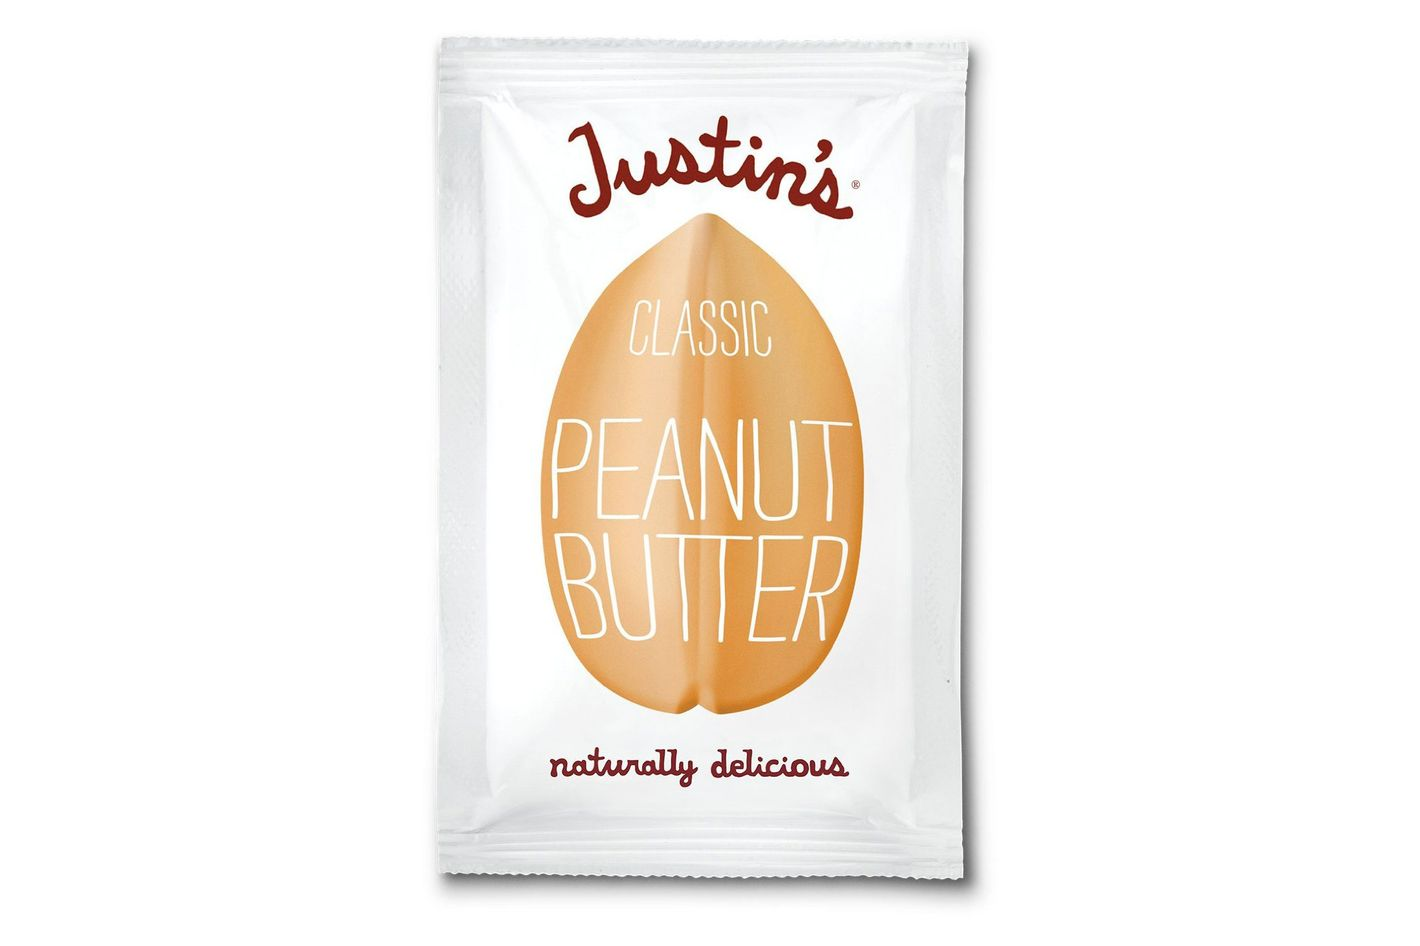 Justin's Peanut Butter Squeeze Pack